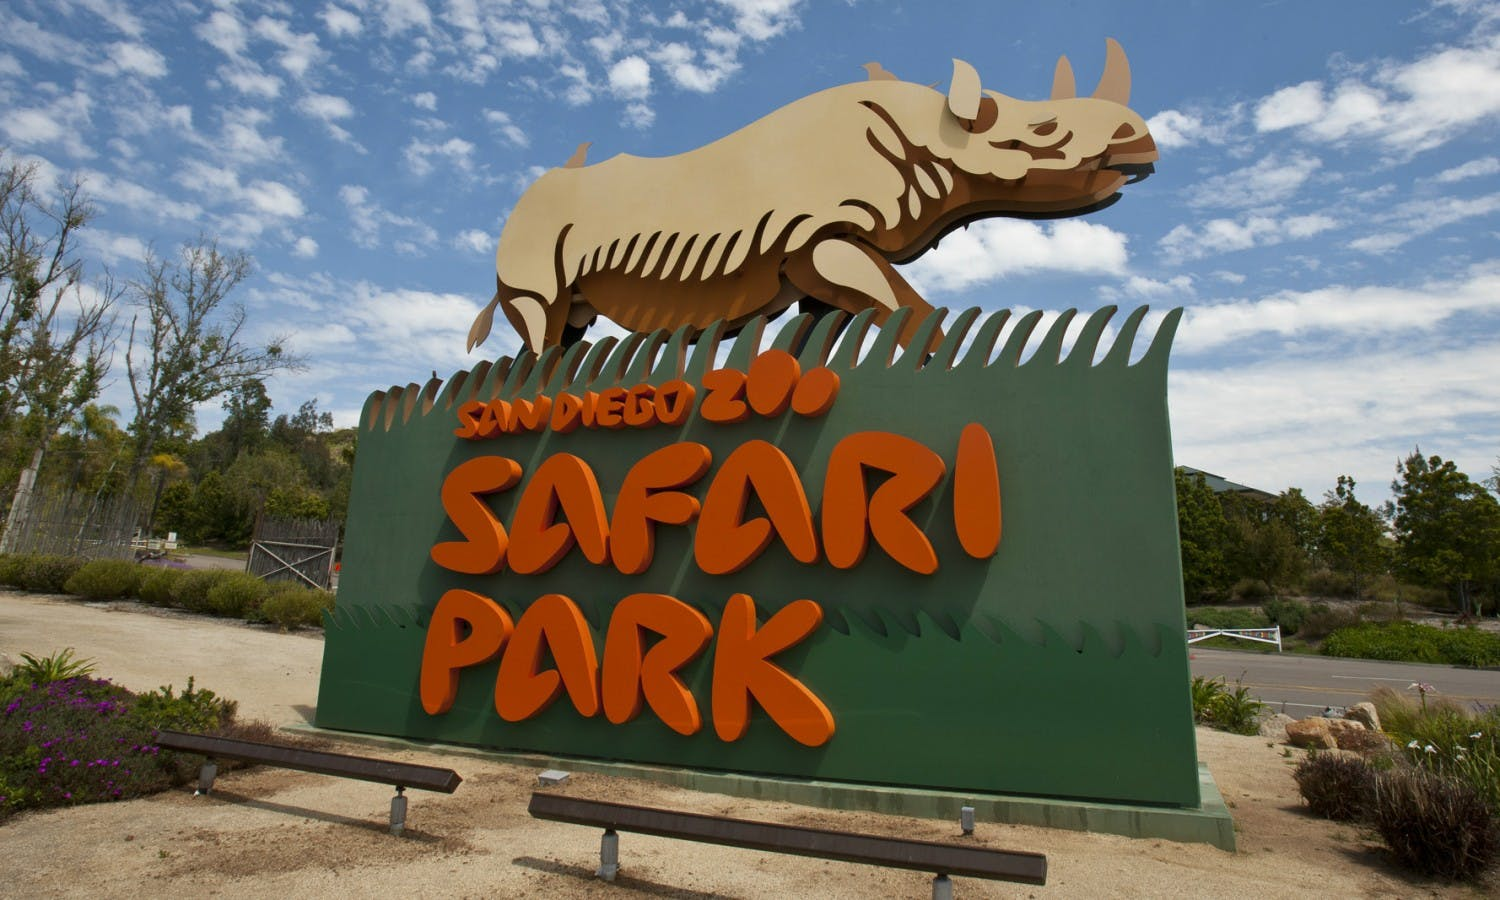 San Diego Zoo Safari Park 1-day pass tickets